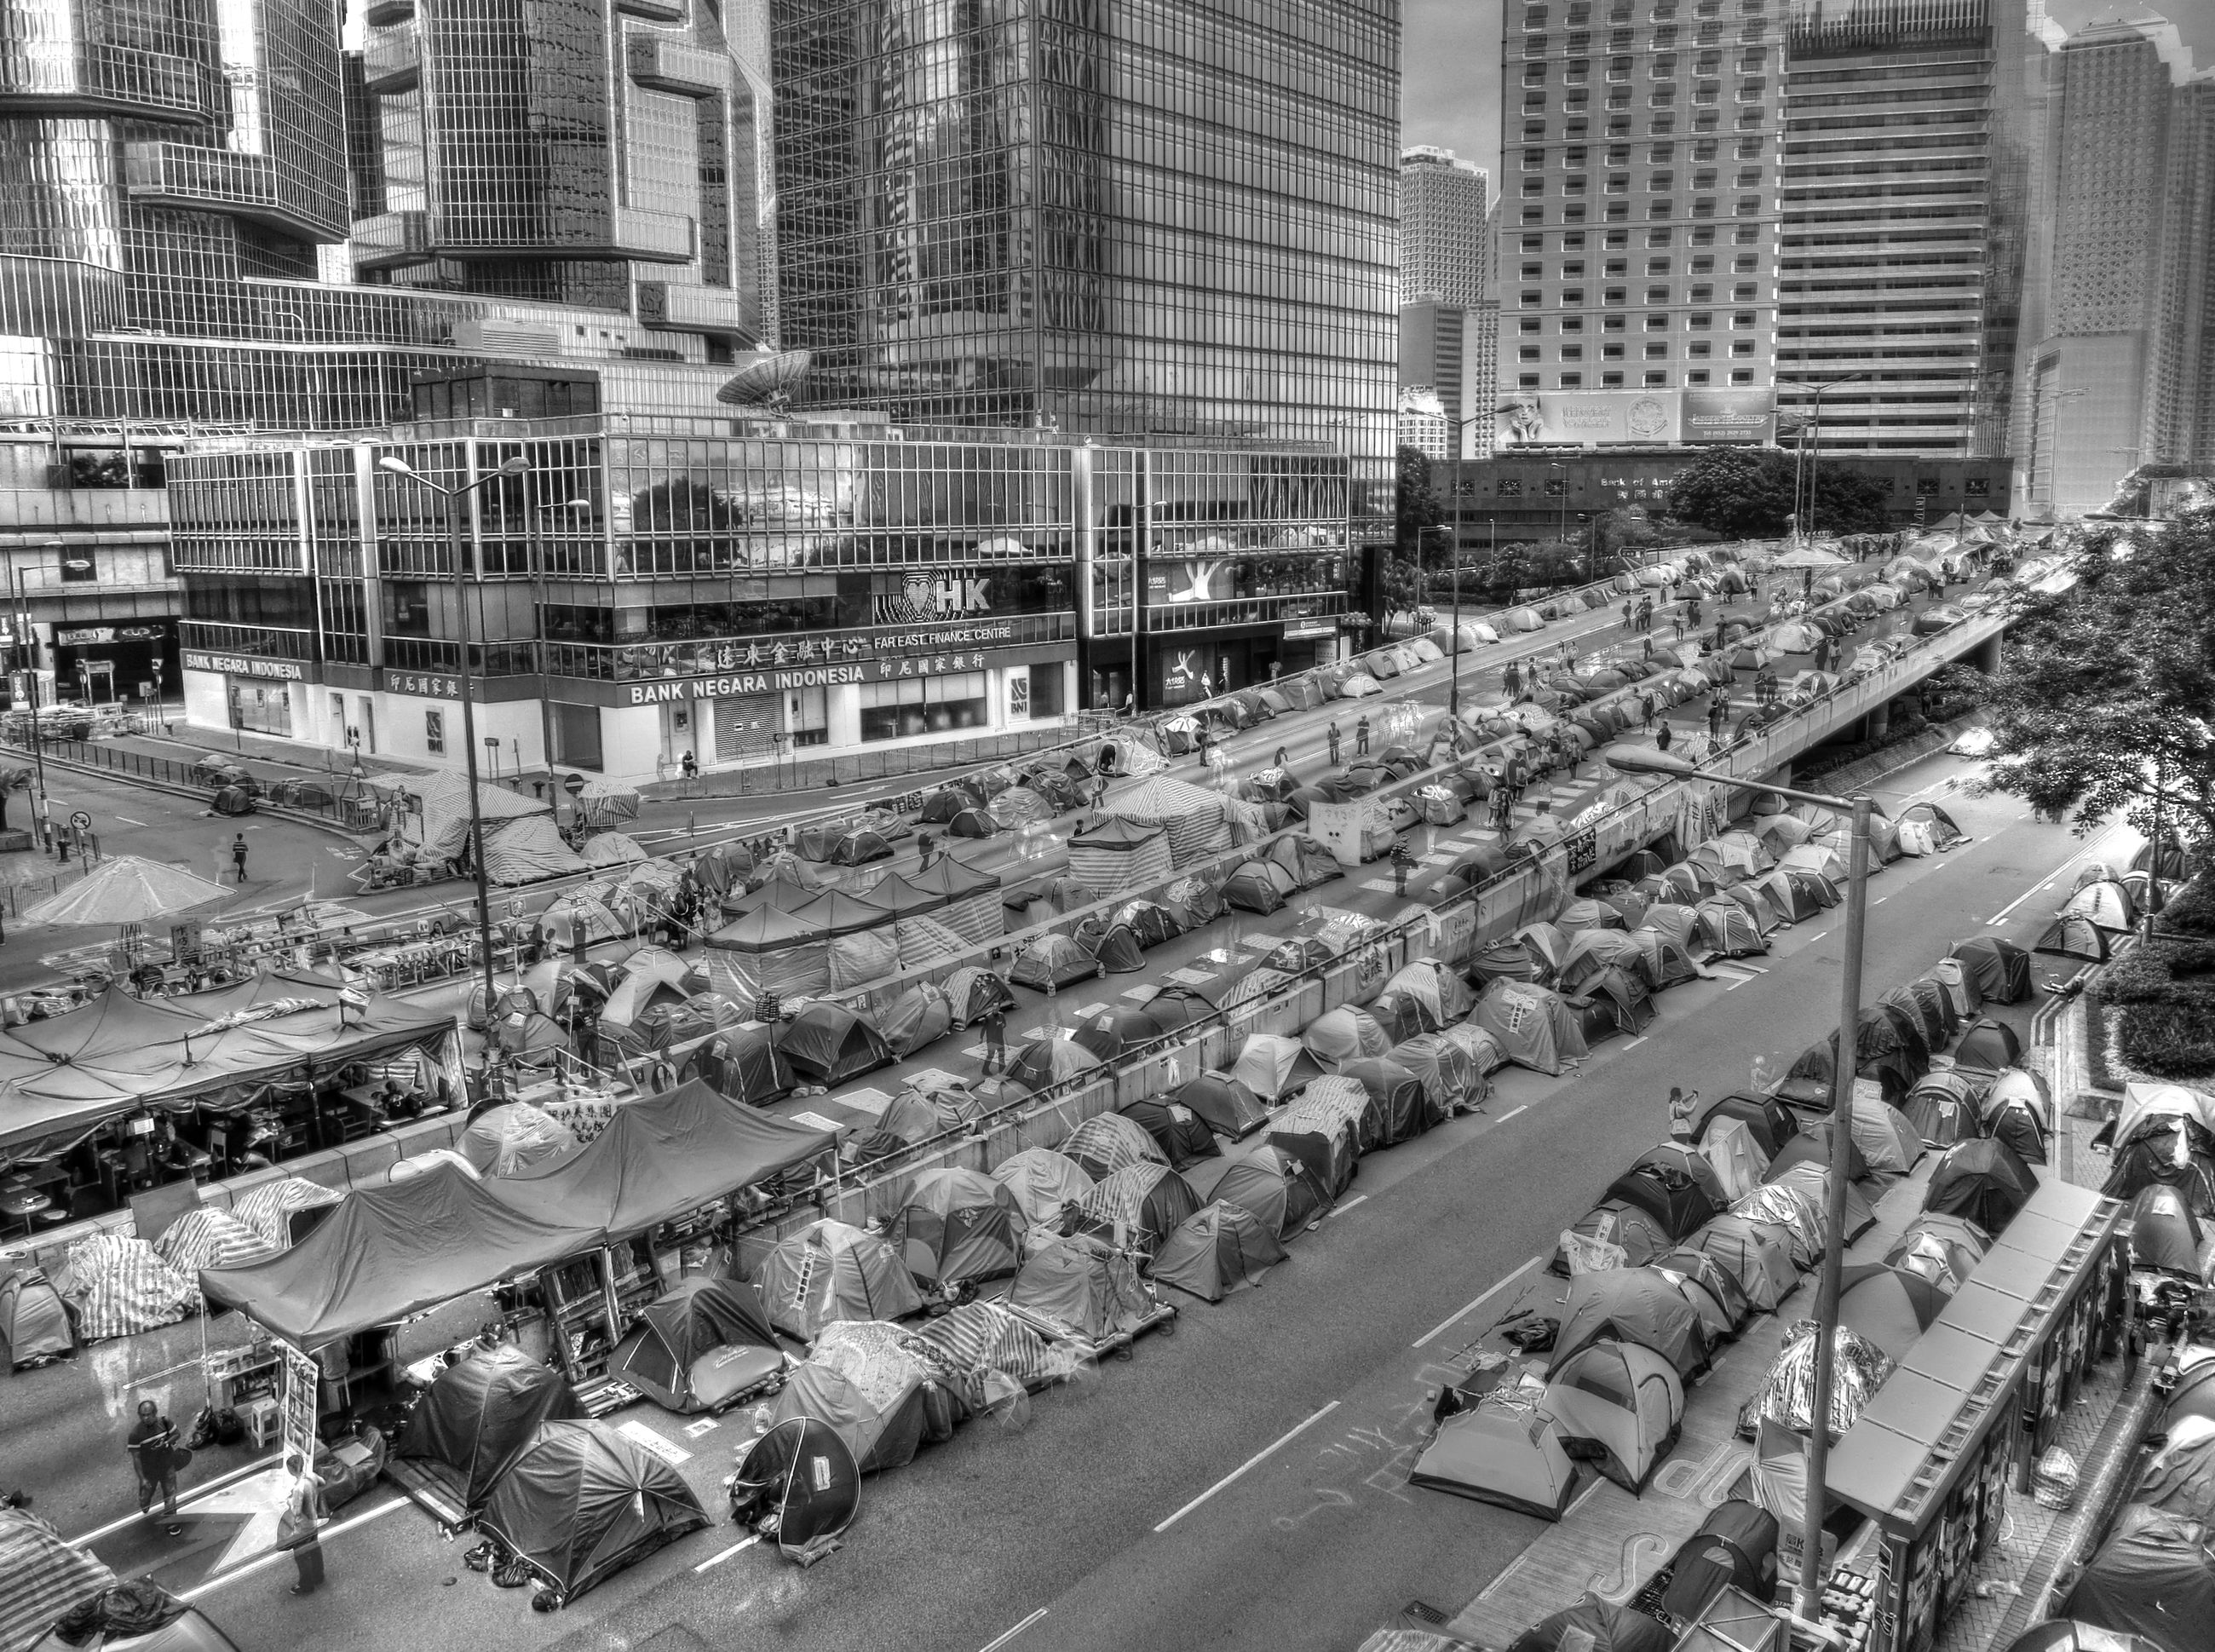 land vehicle, transportation, building exterior, city, high angle view, car, street, architecture, built structure, mode of transport, city life, road, abundance, large group of people, market, city street, outdoors, day, incidental people, crowded